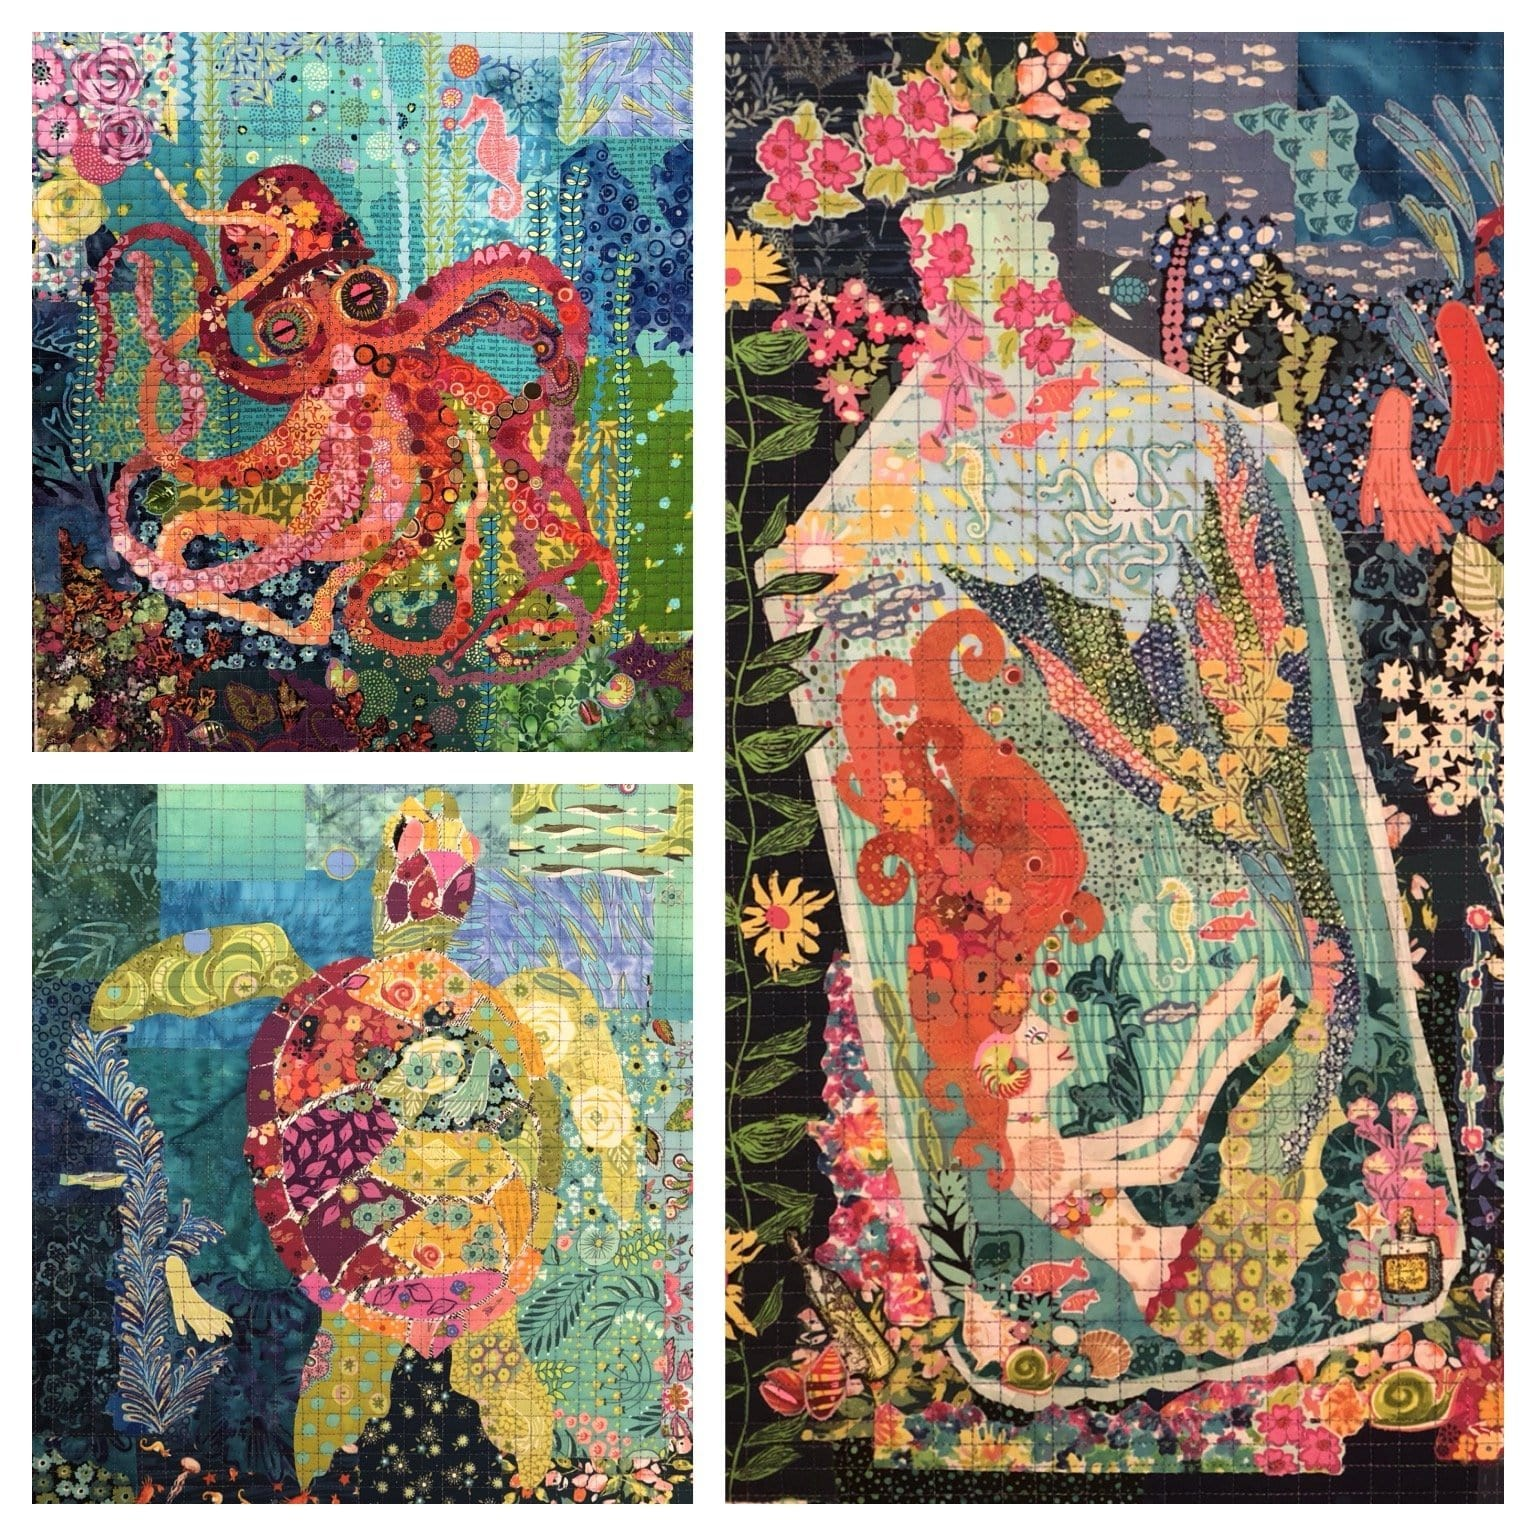 Teeny Tiny Collage Pattern Group #4: Sea Turtle, Mermaid, & Octopus